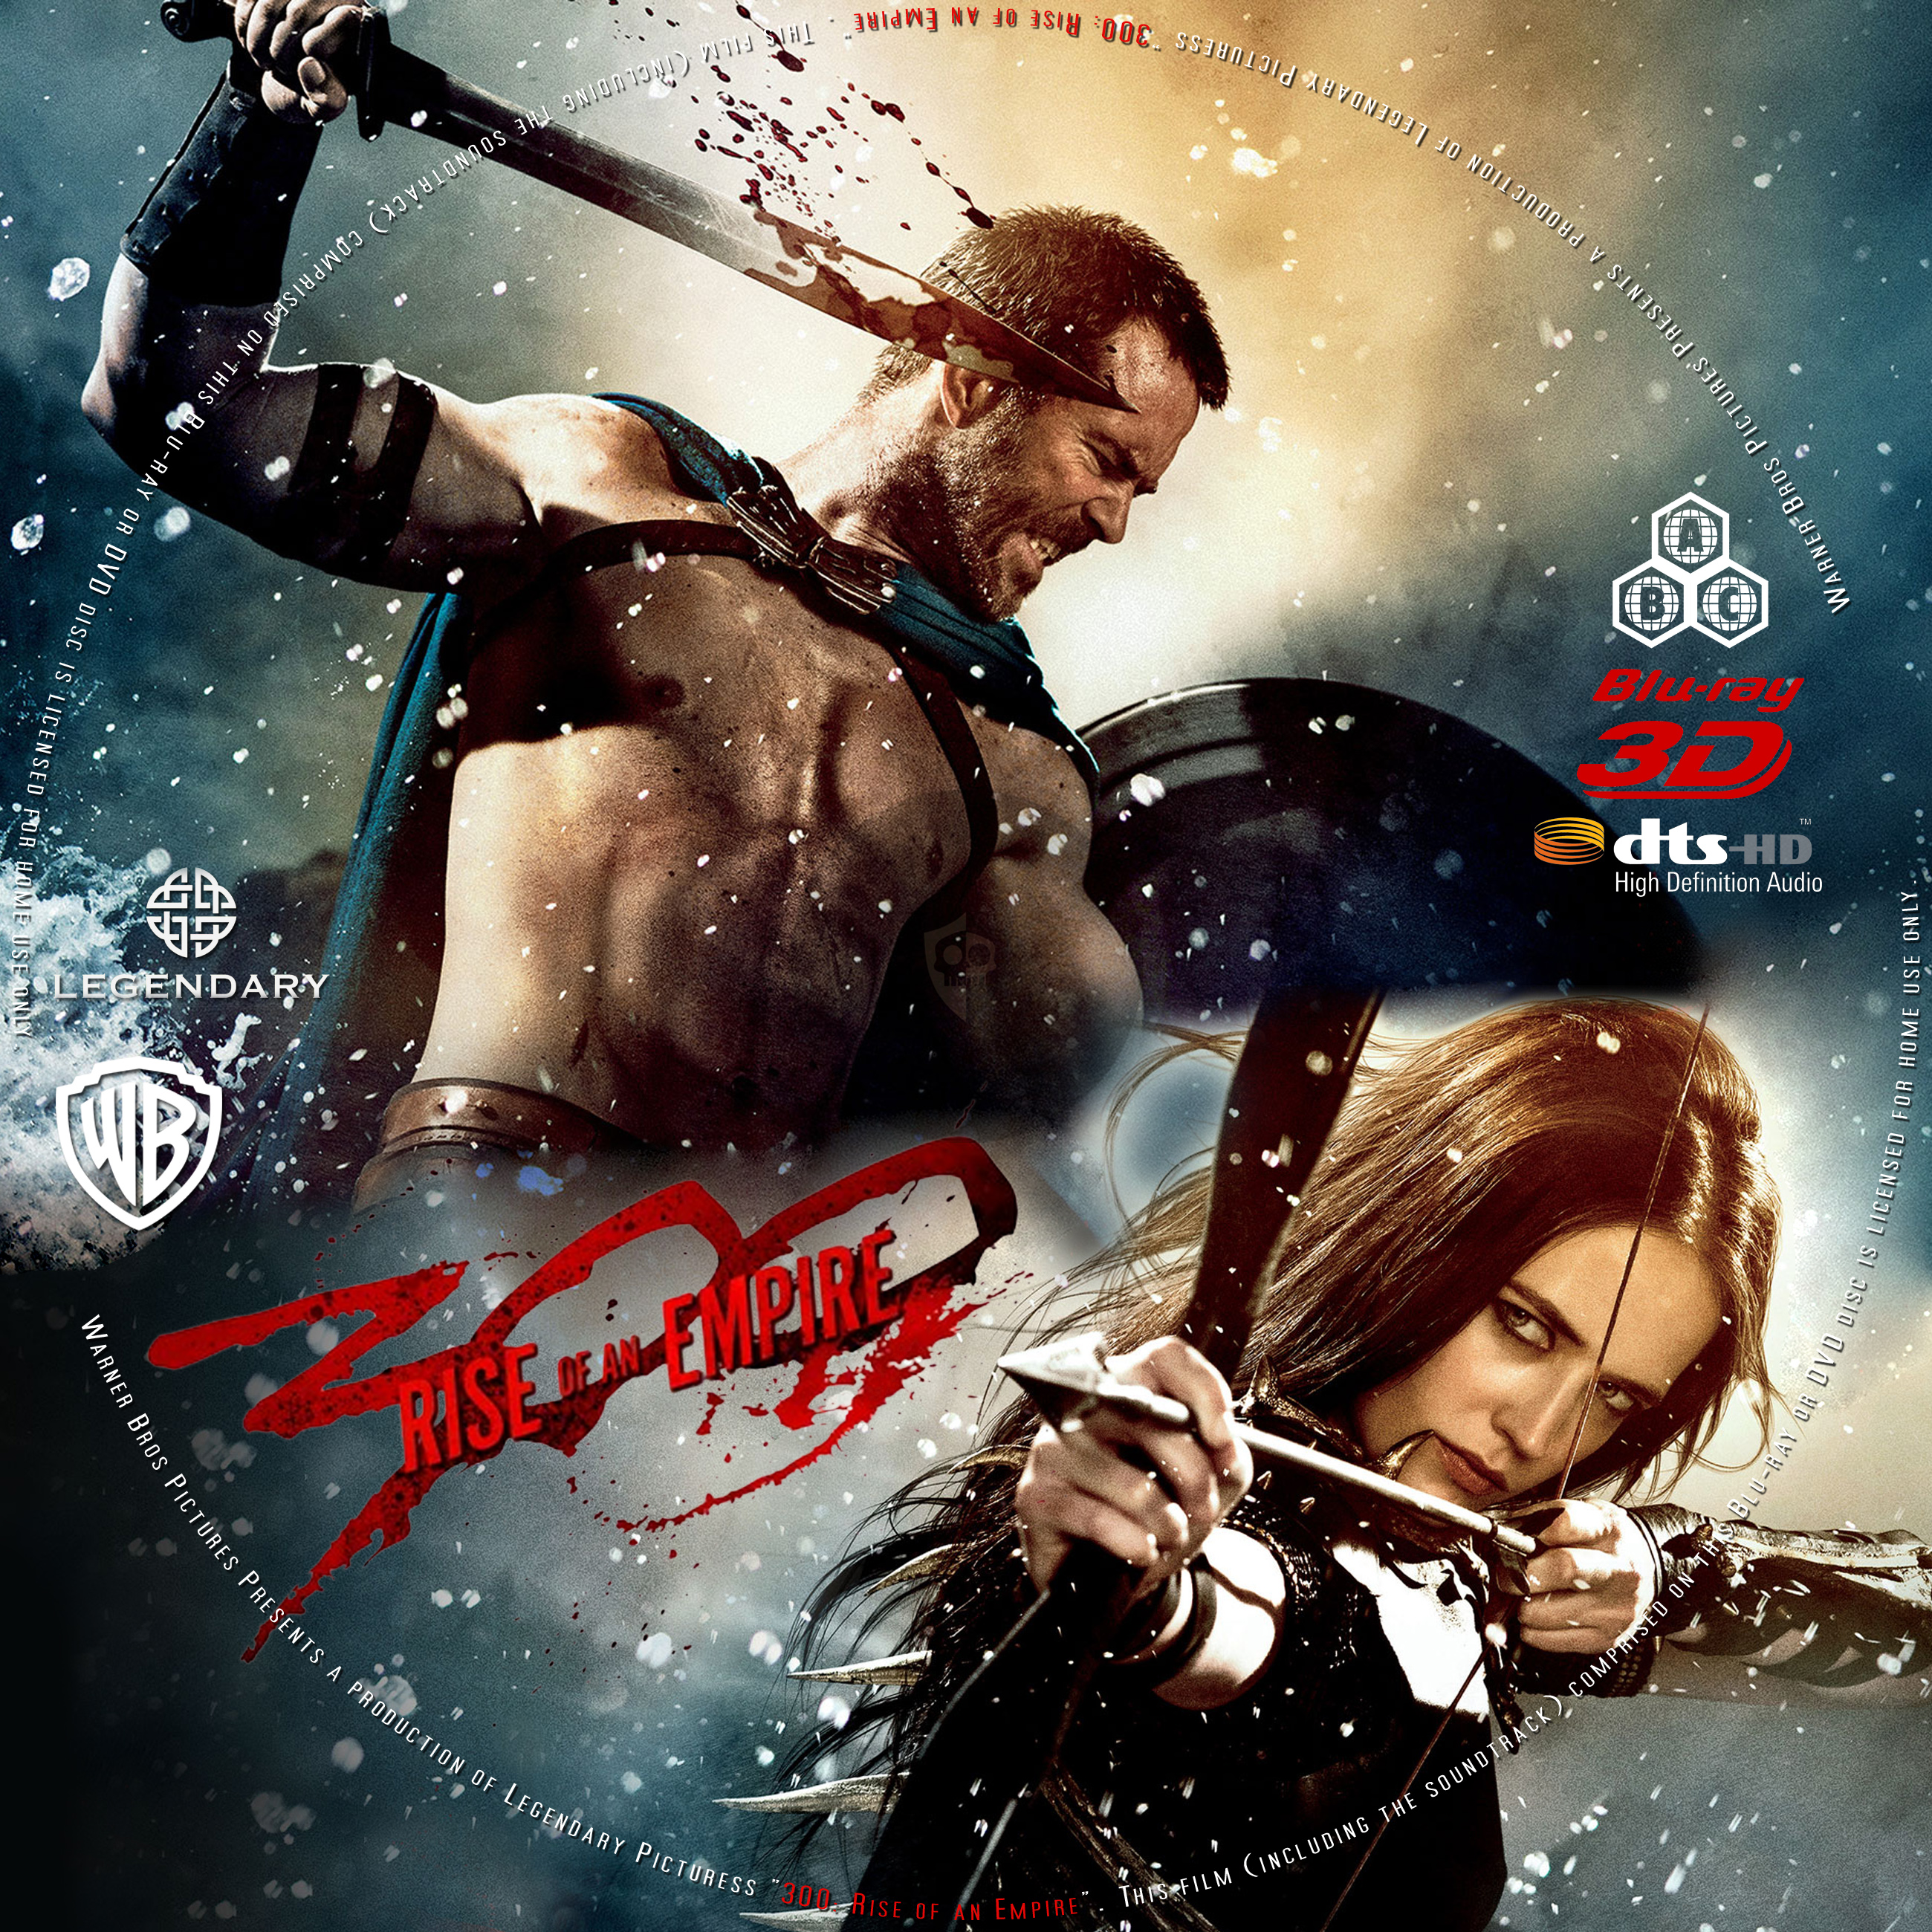 Covers Box Sk 300 Rise Of An Empire 2014 High